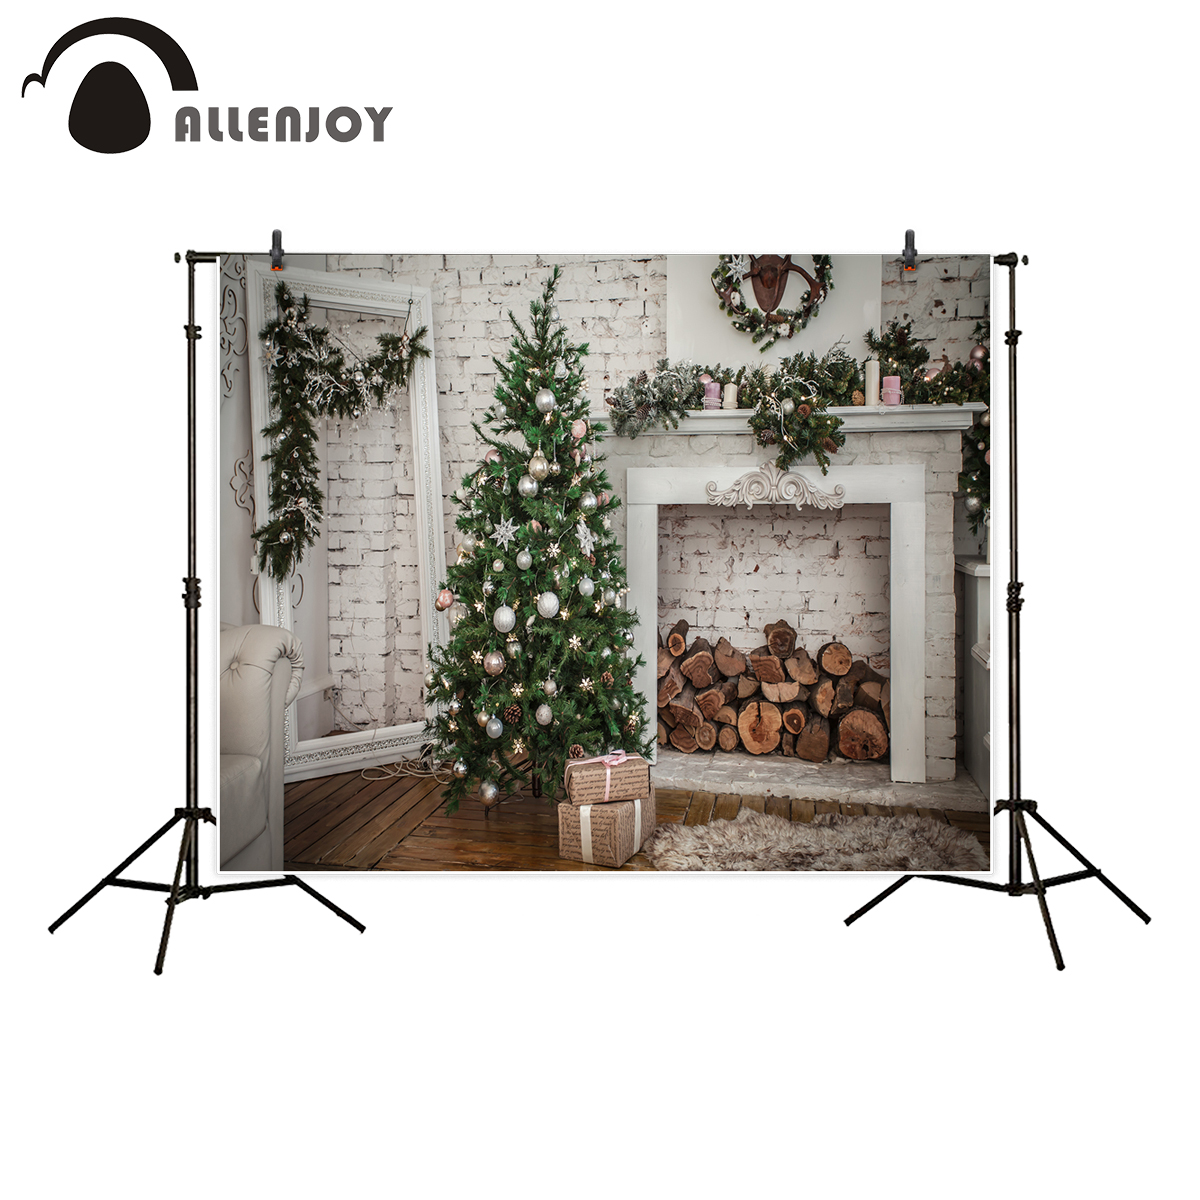 Allenjoy photography background Christmas tree brick wall fireplace nordic backdrop photocall printed portrait shooting